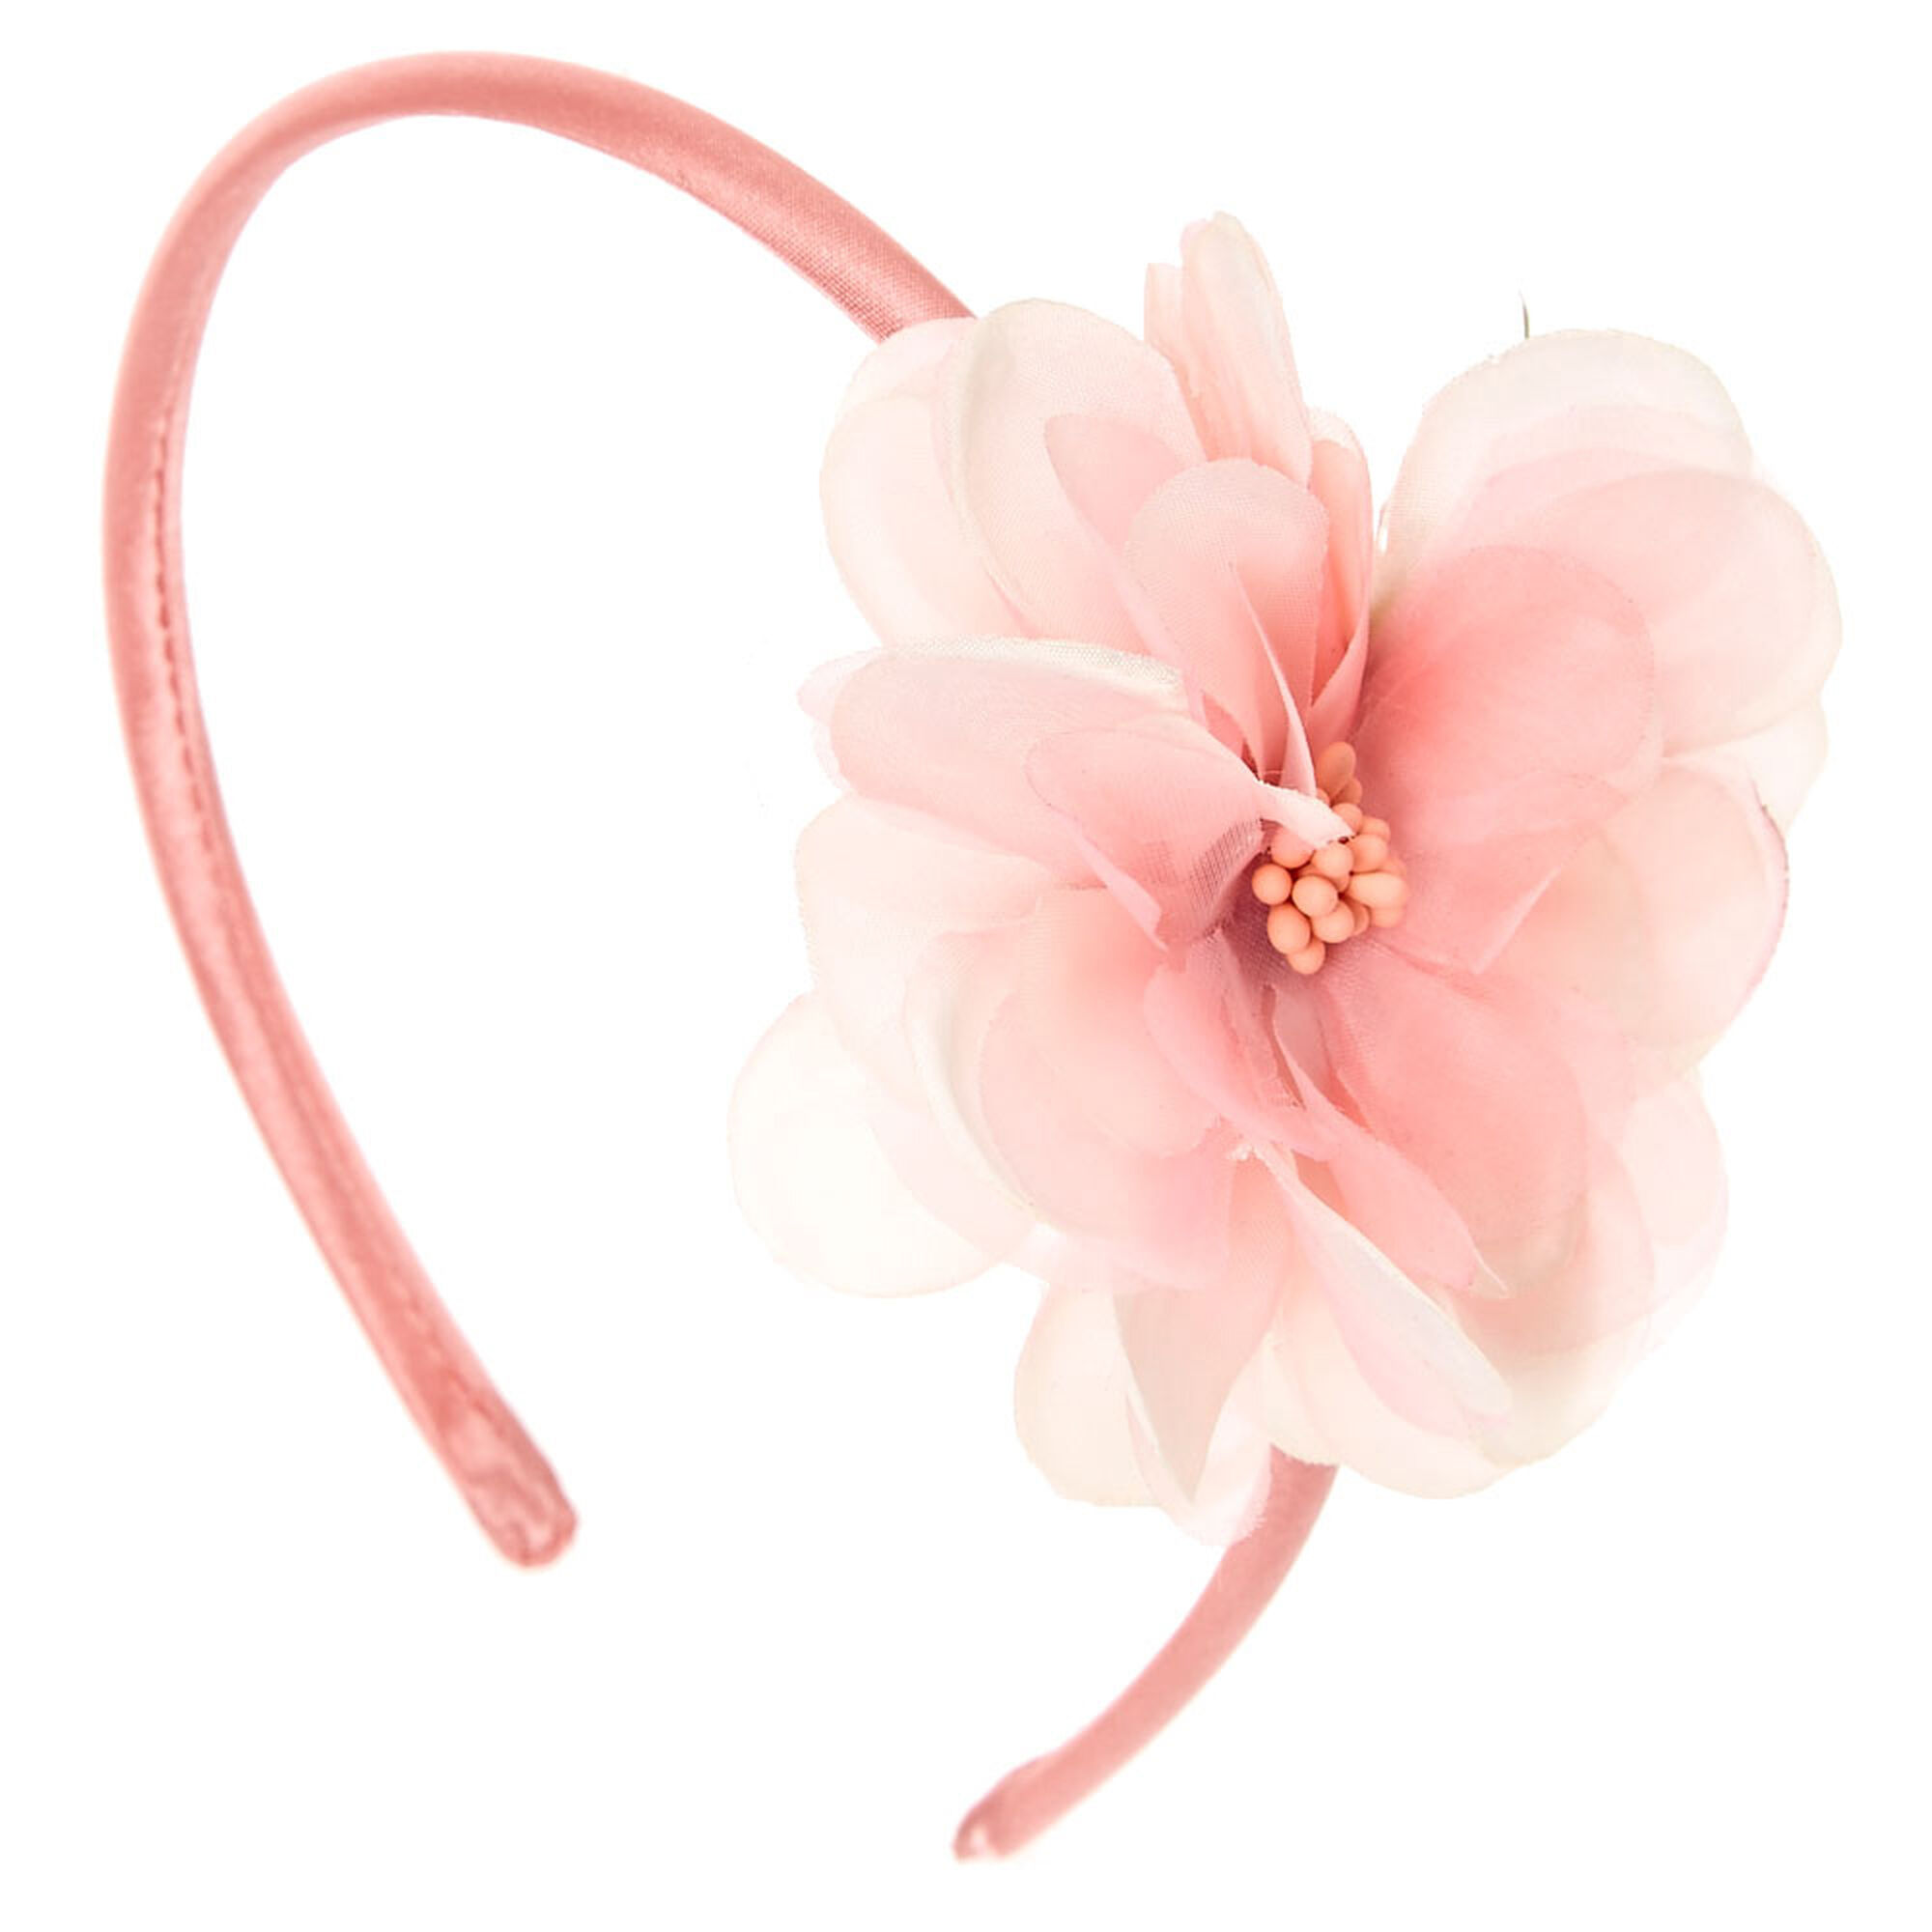 Pink Headbands. Pink sport headbands terry for sweat. Be seen on the field with our pink athletic terry headbands. When you play sports, they keep the sweat out of your eyes and because they are machine washable, our pink sport headbands will work as hard and as often as you.